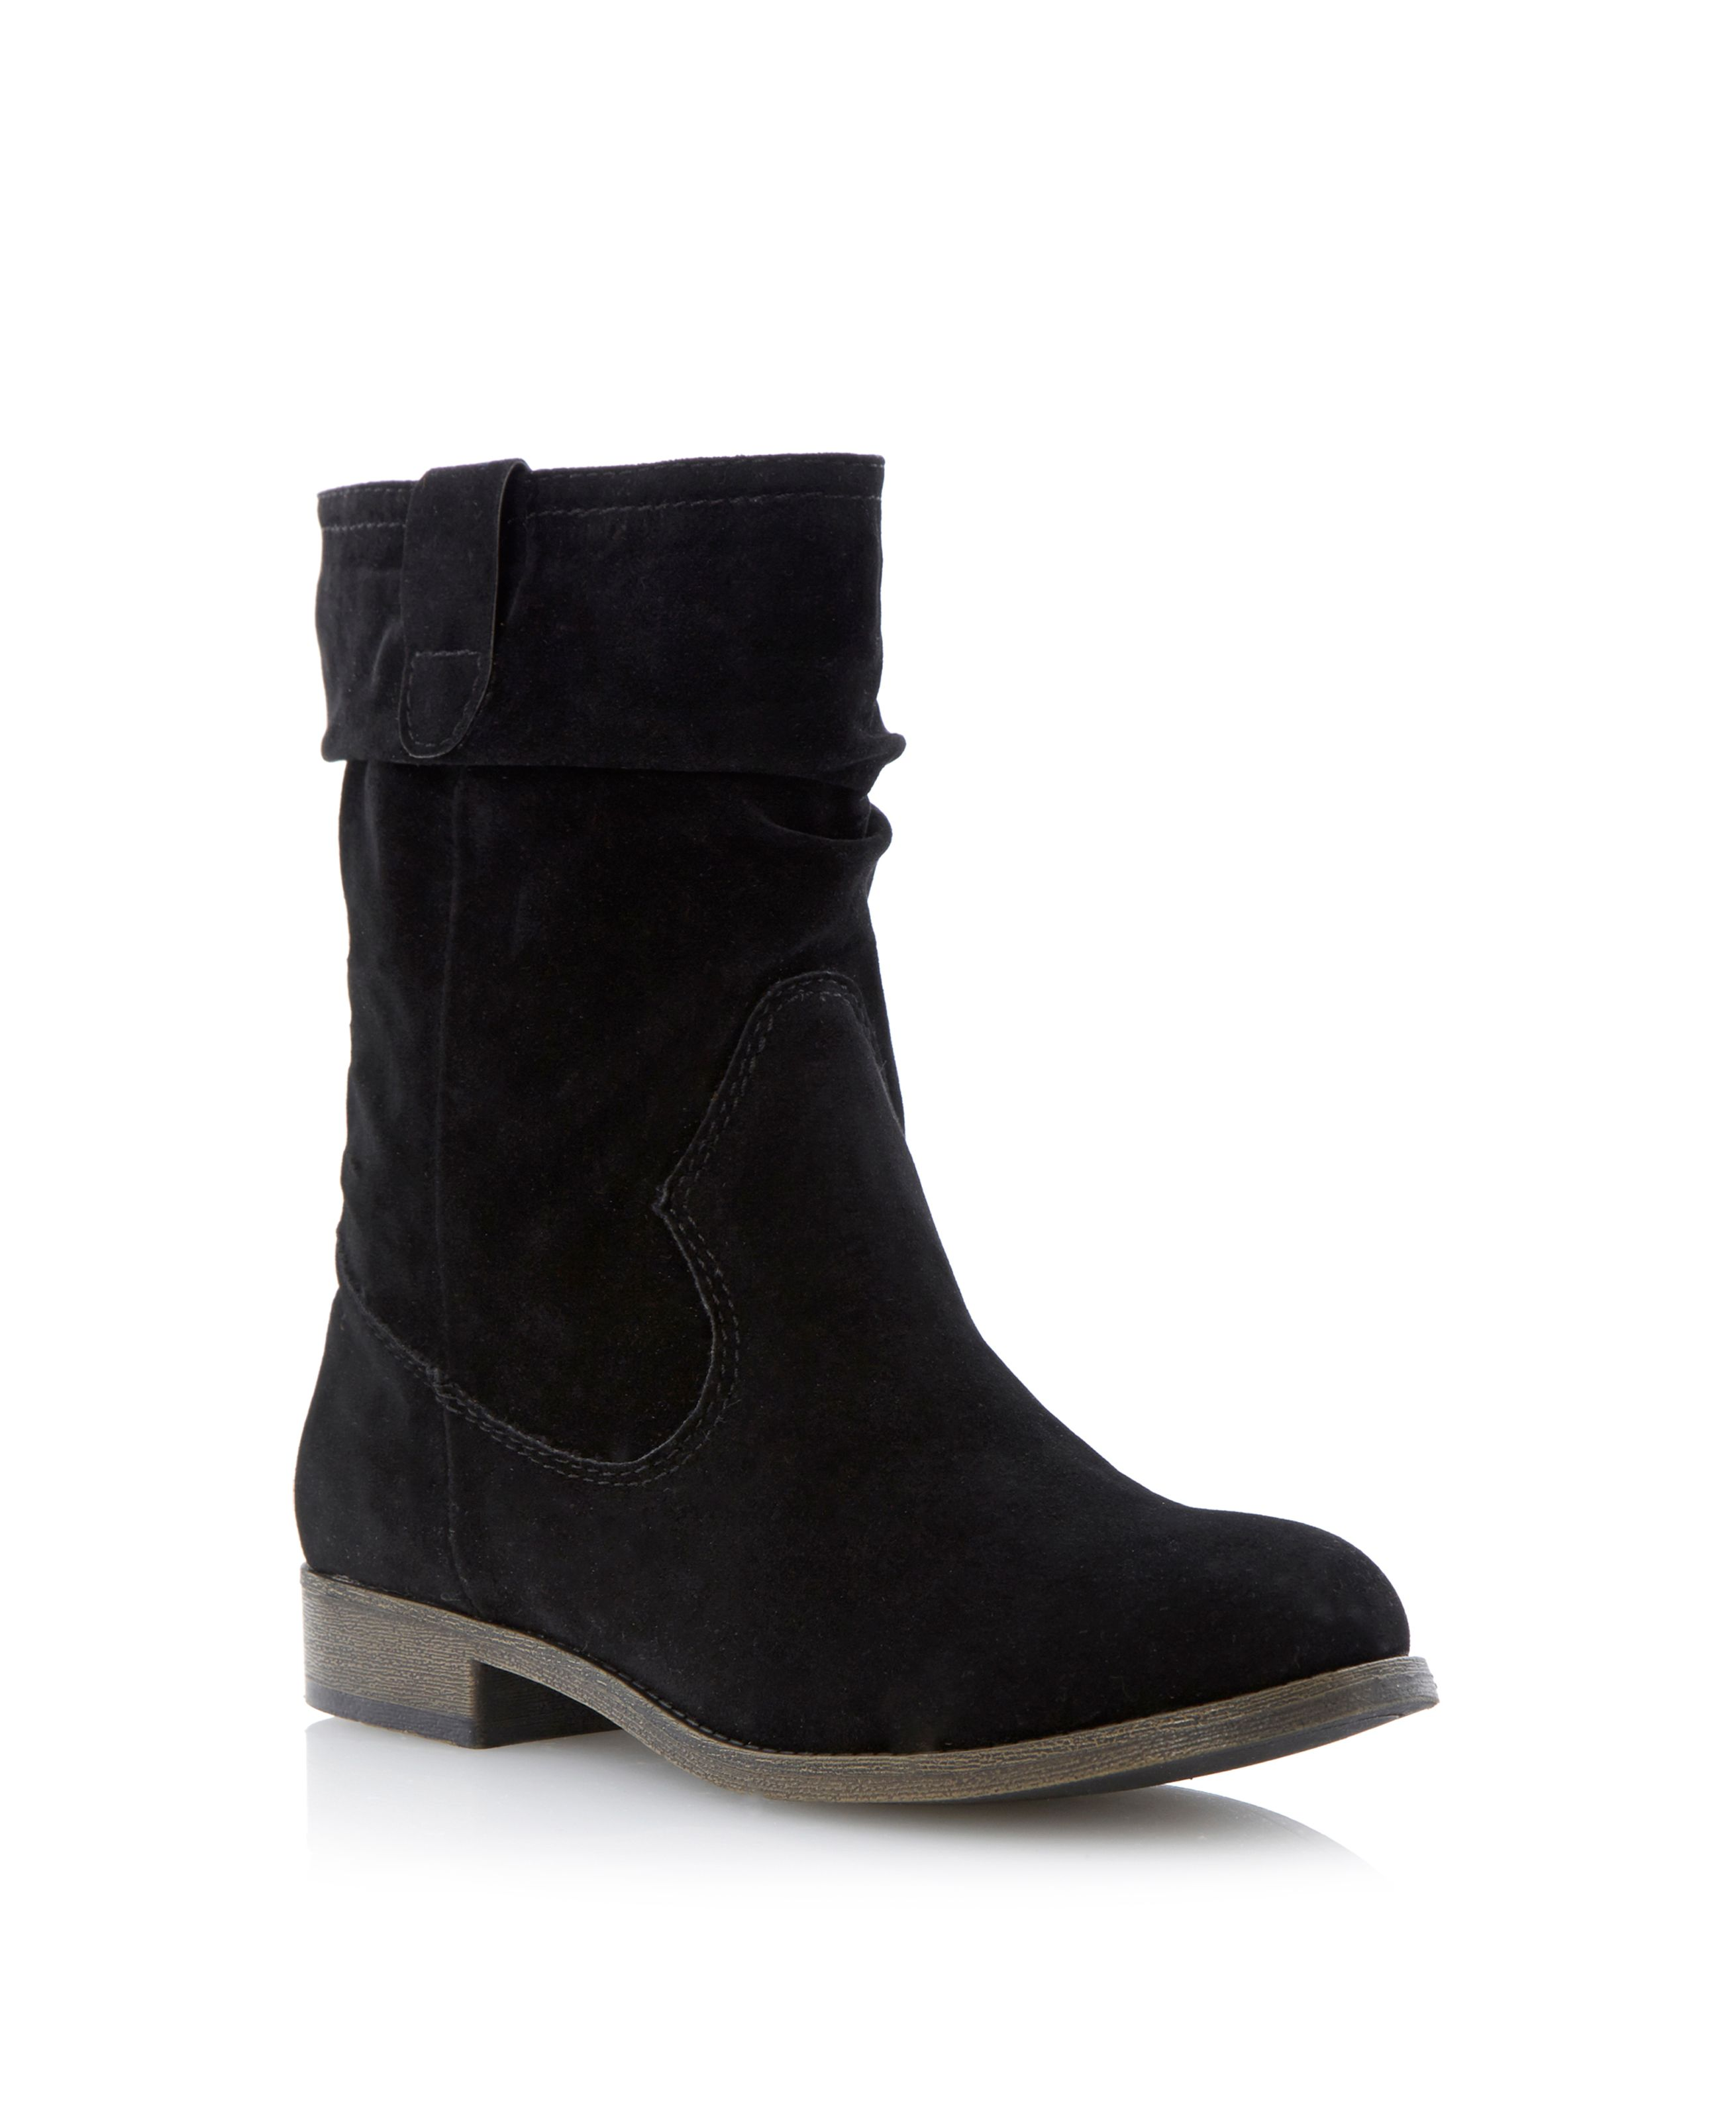 Rilee ruched calf boots